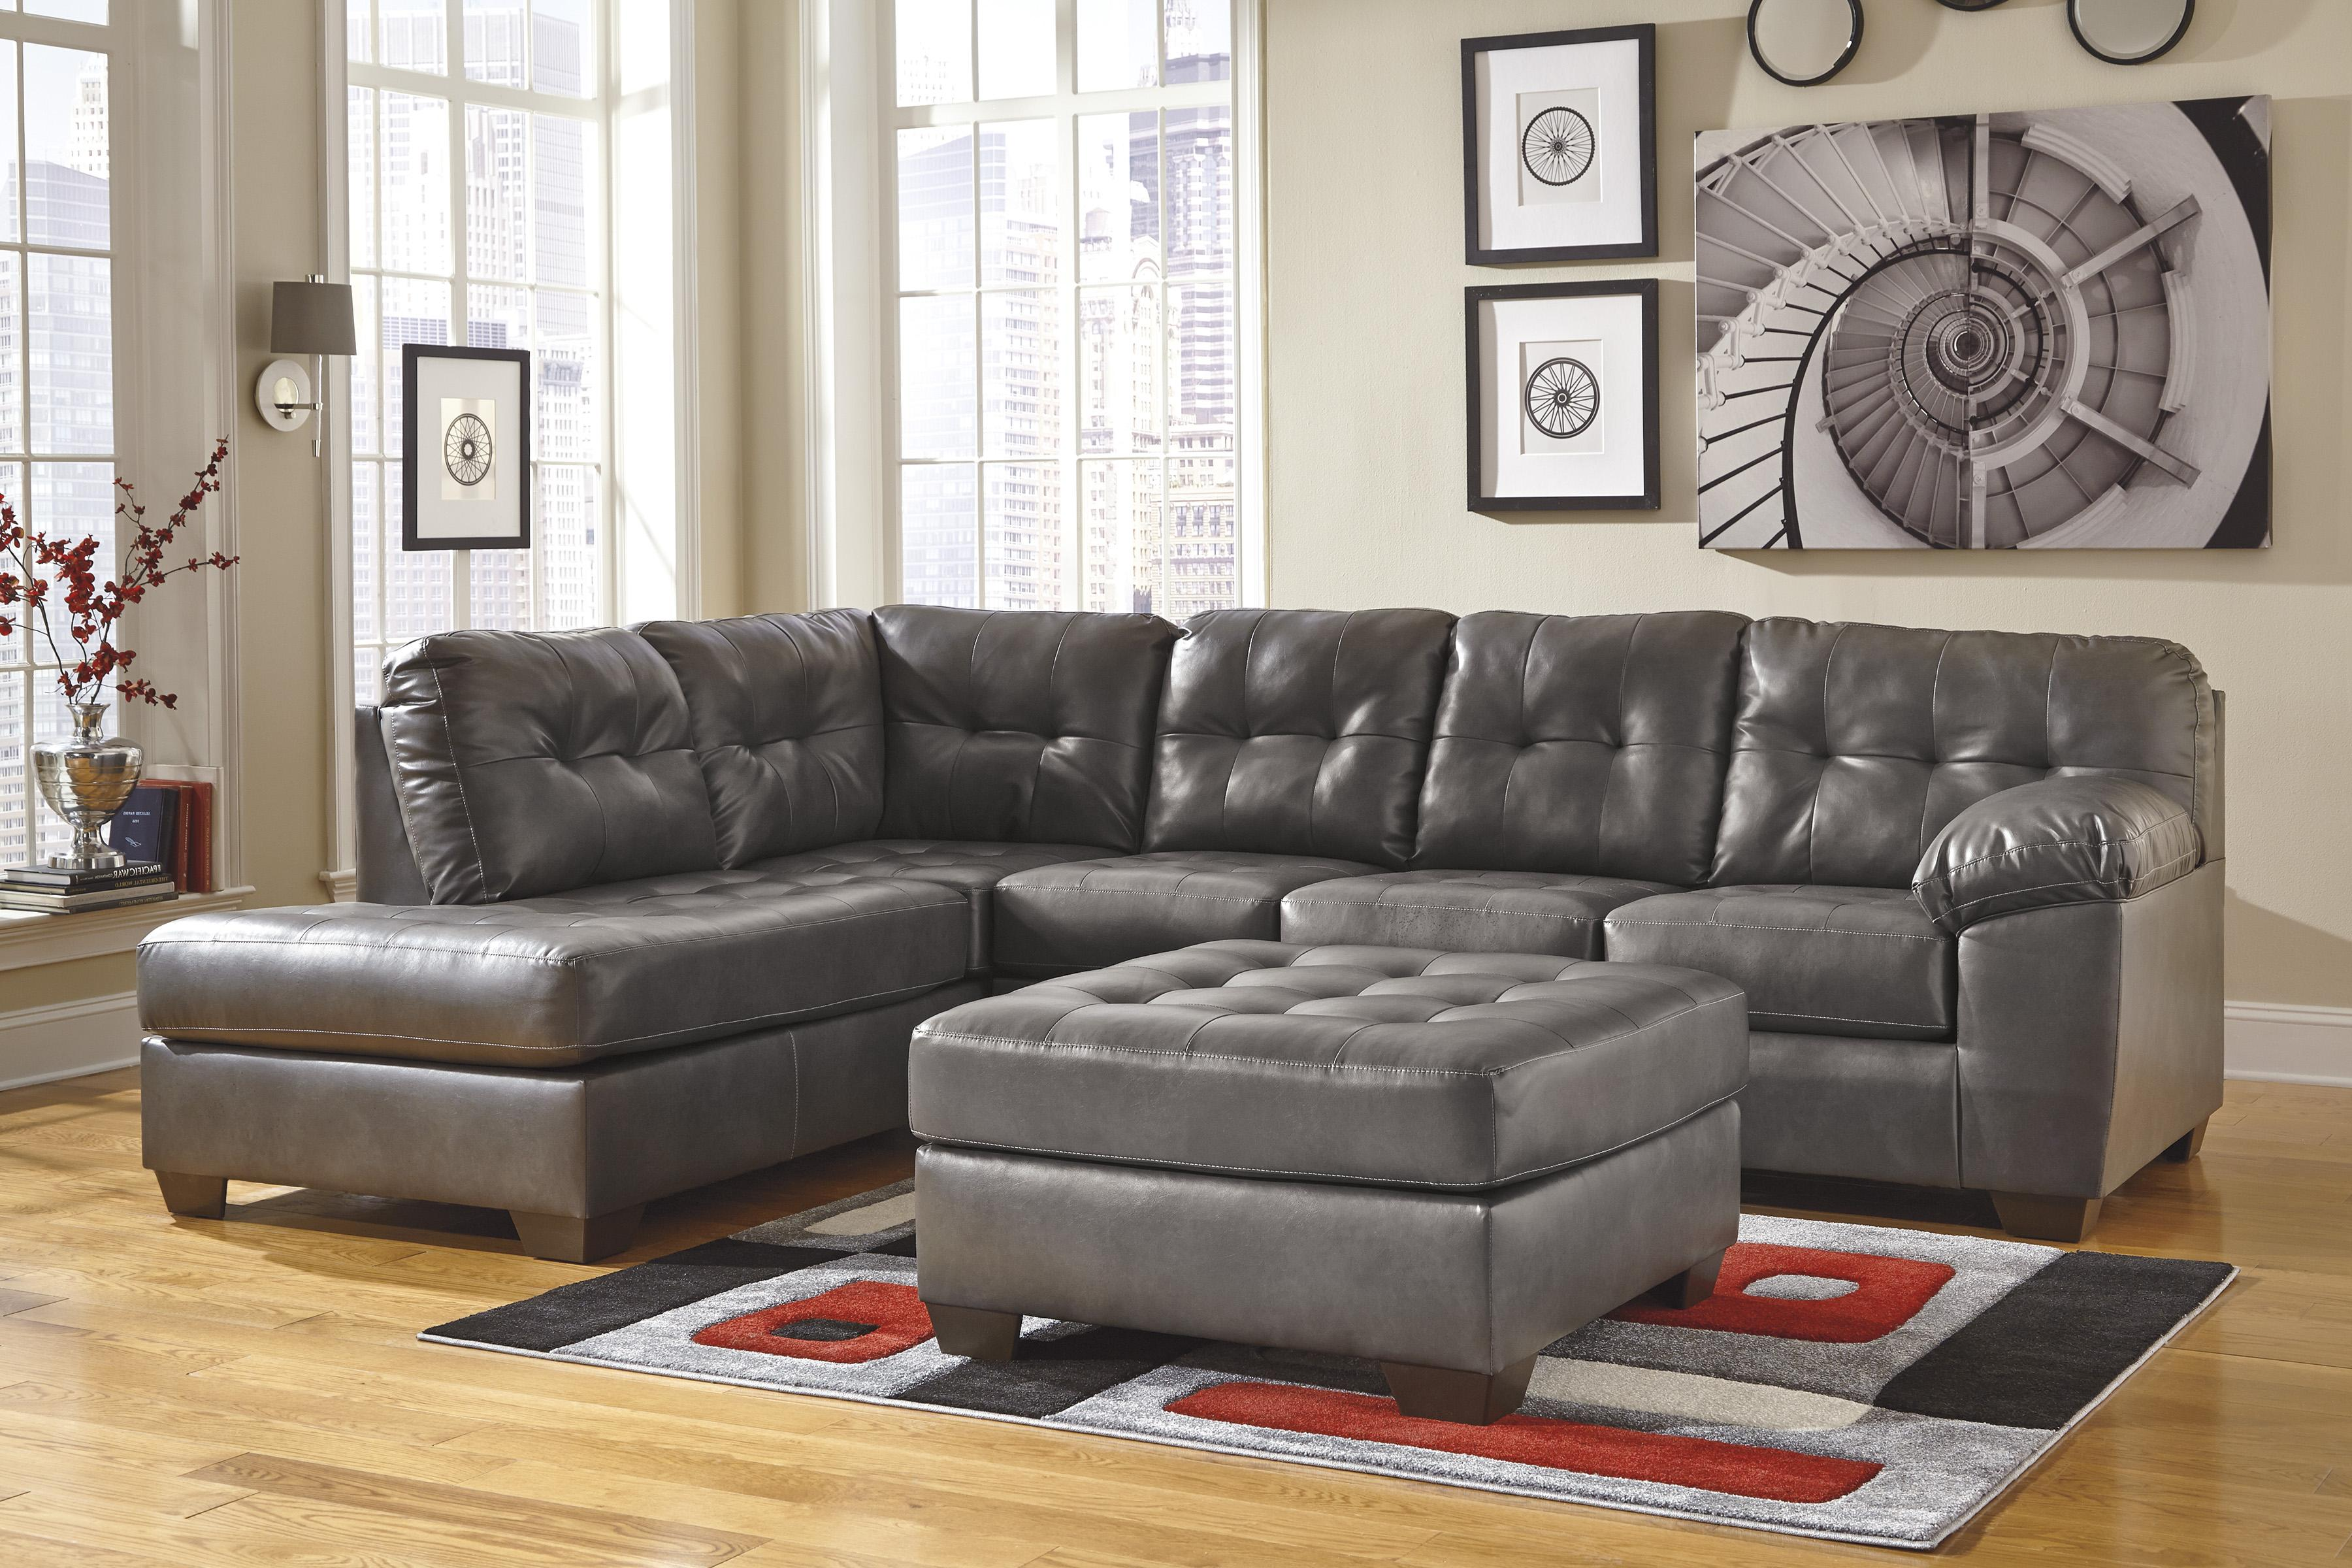 Alliston DuraBlend® - Gray Stationary Living Room Group by Signature Design by Ashley at Beds N Stuff